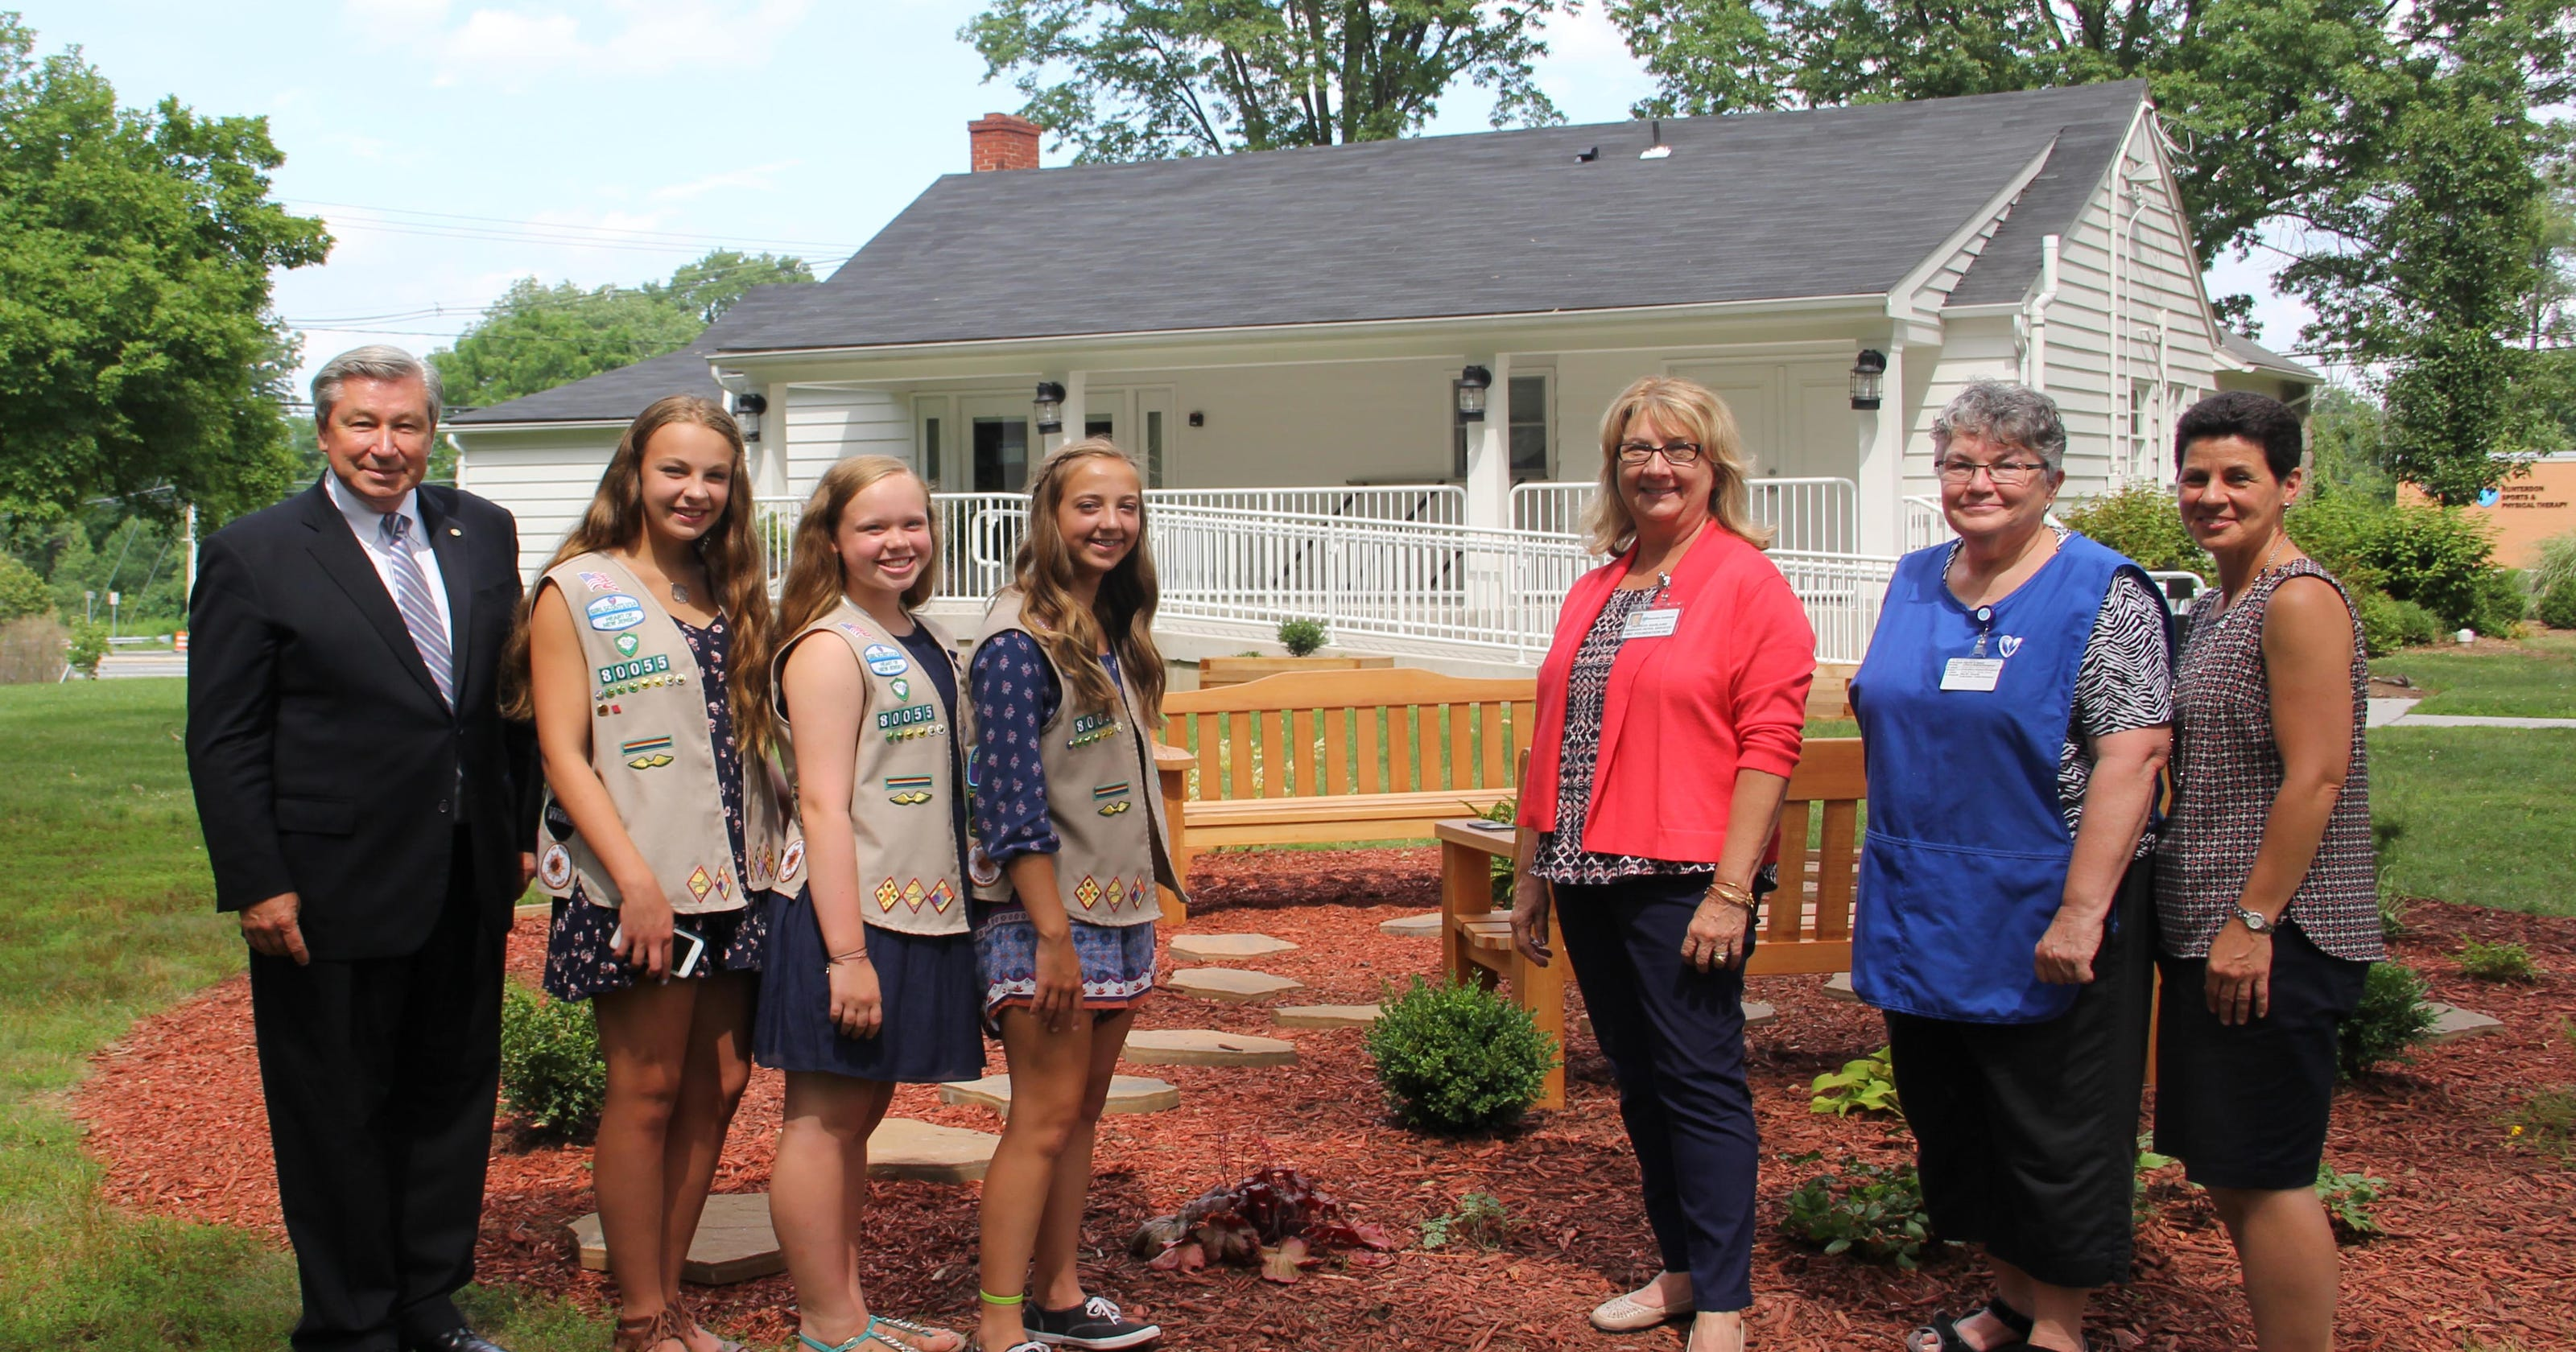 flemington girl scouts earn silver award for designing reading garden - Mendham Garden Center